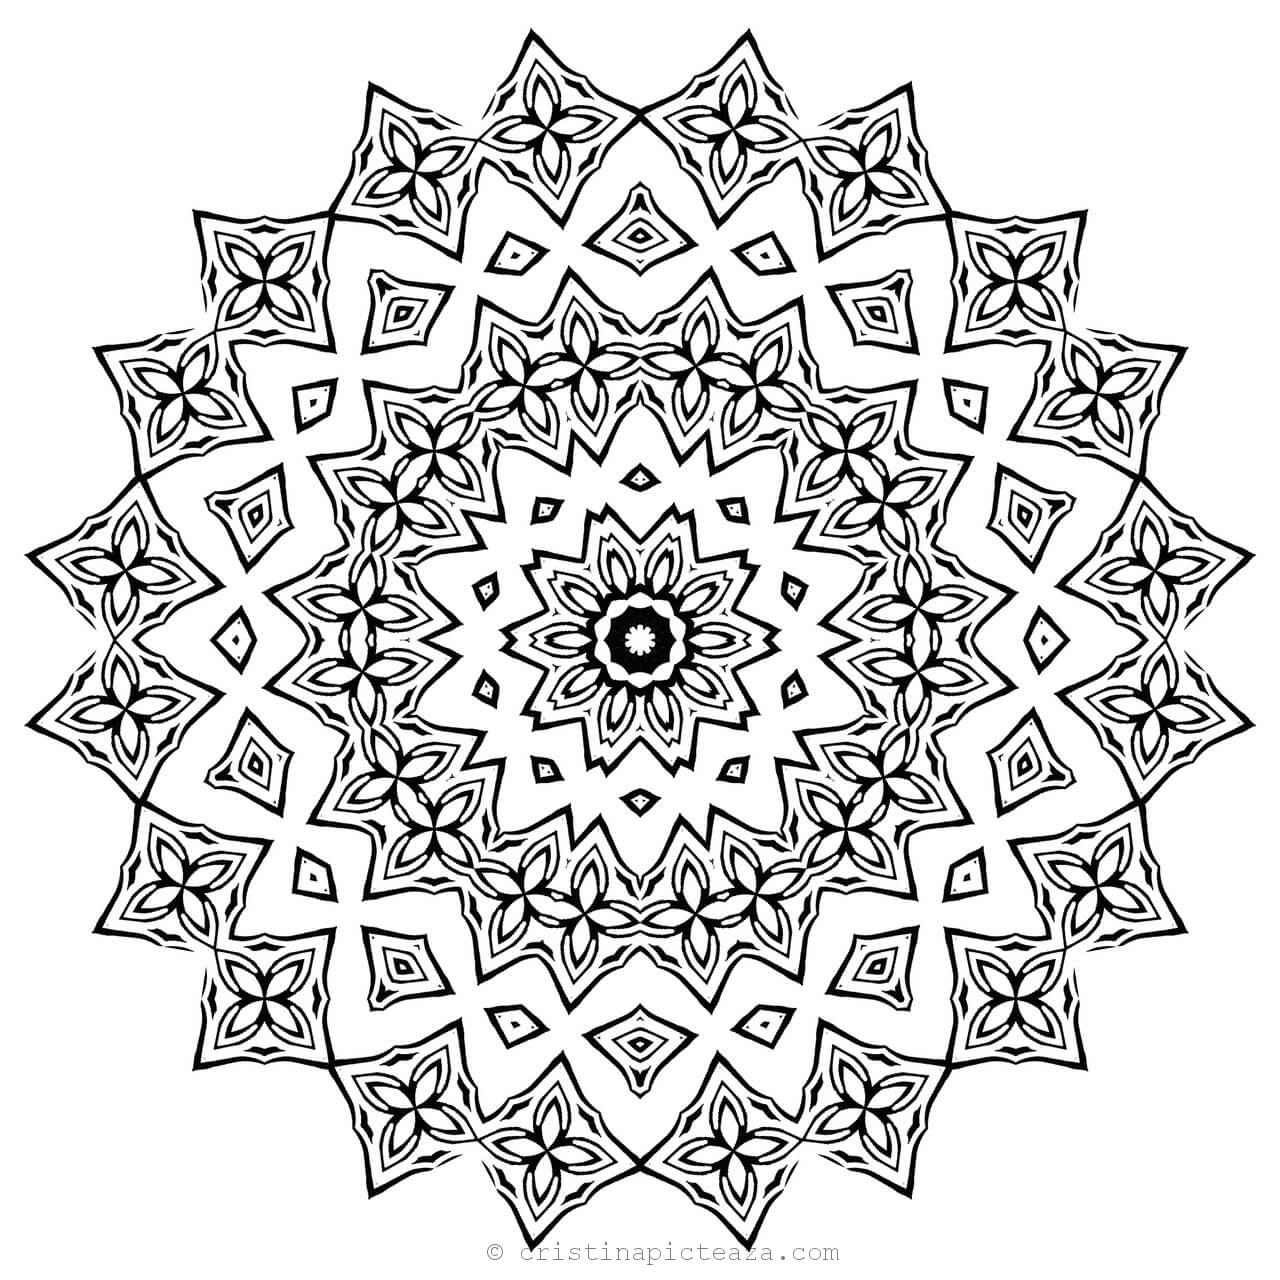 mandala coloring pages for adults free get this free mandala coloring pages for adults 42893 adults mandala pages coloring free for